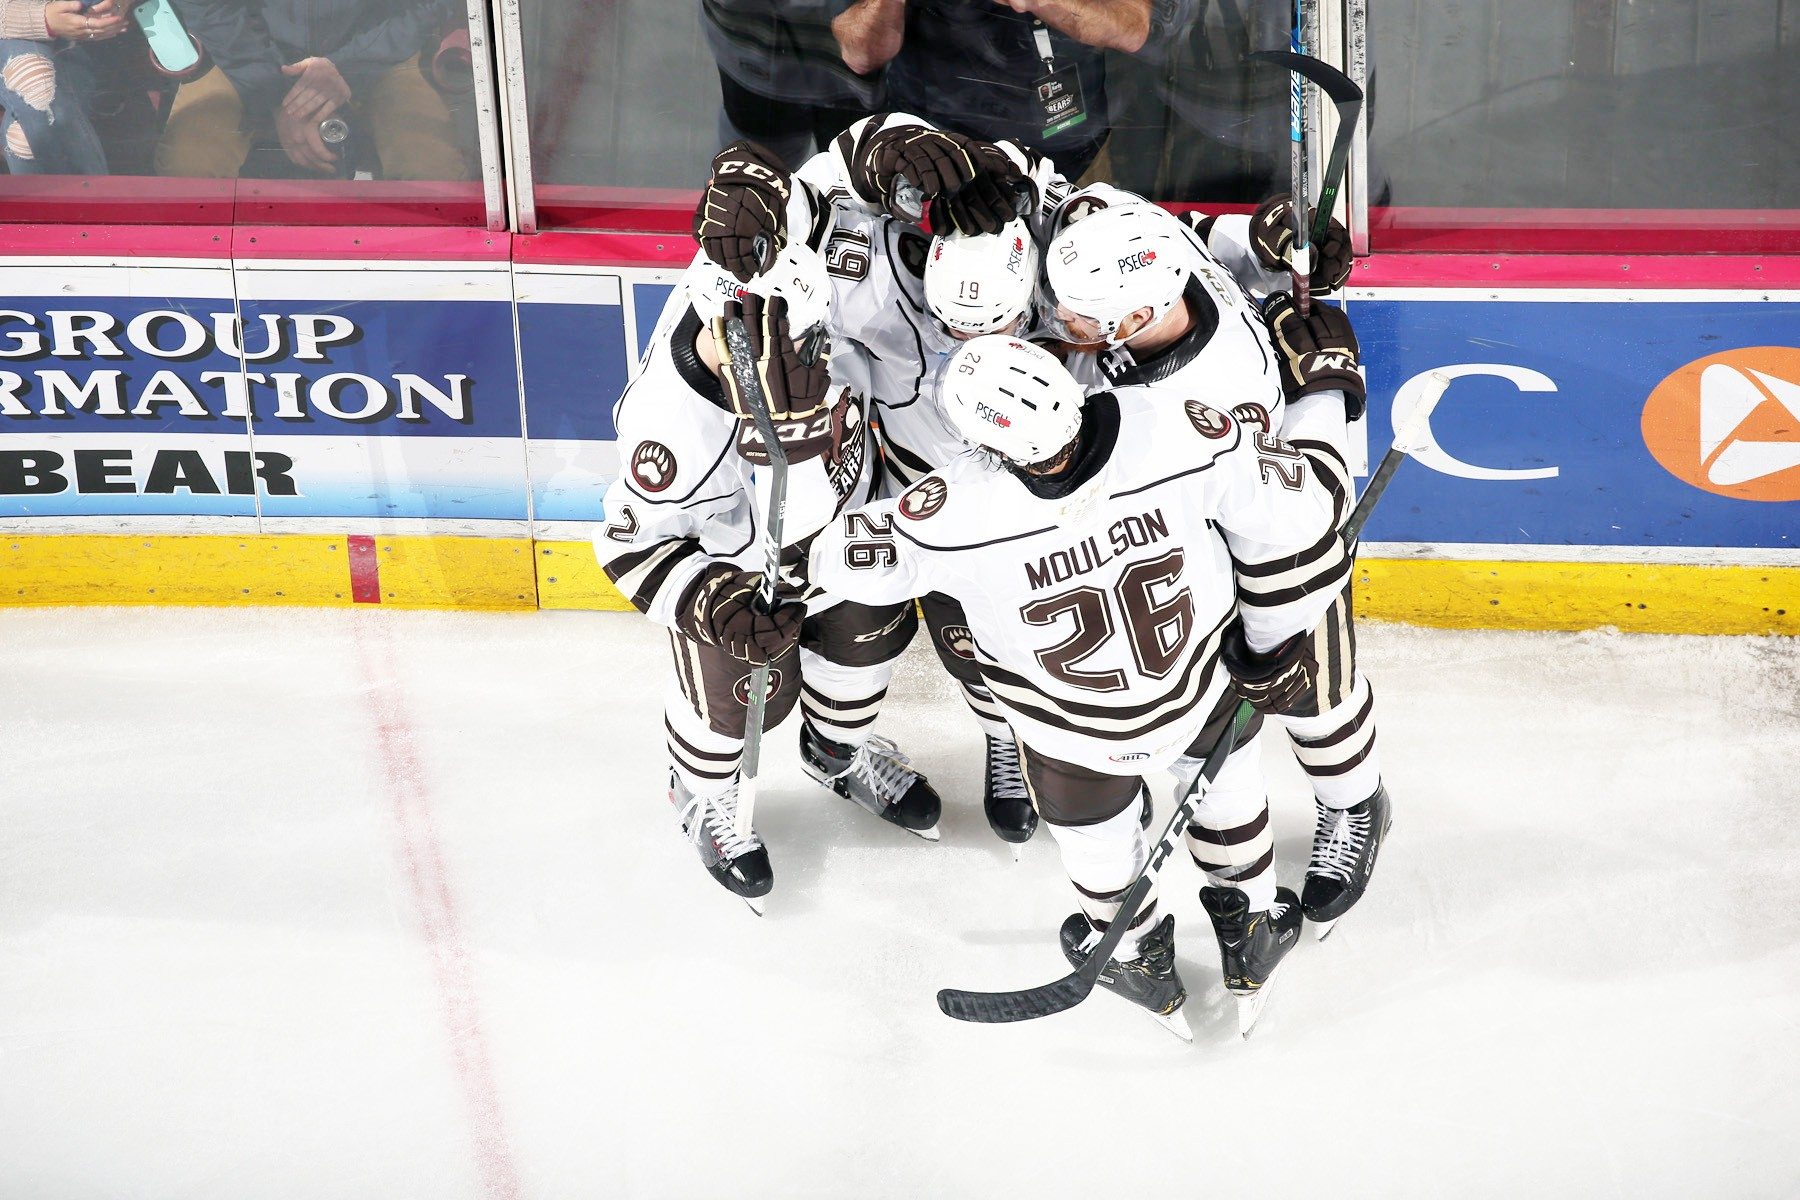 Hershey Bears Hockey Players Celebrating